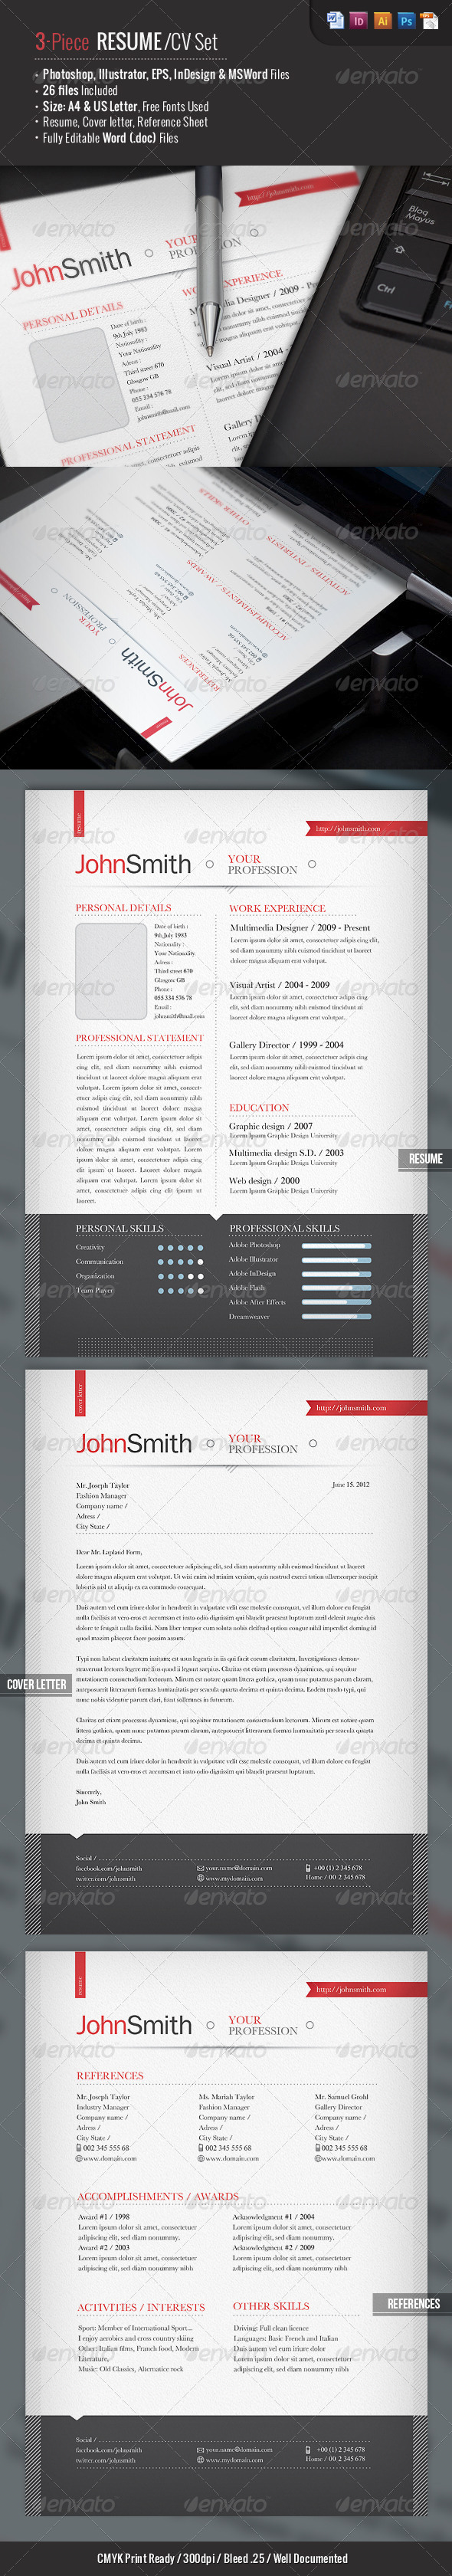 Ready 3-Piece Resume/CV Set - Resumes Stationery